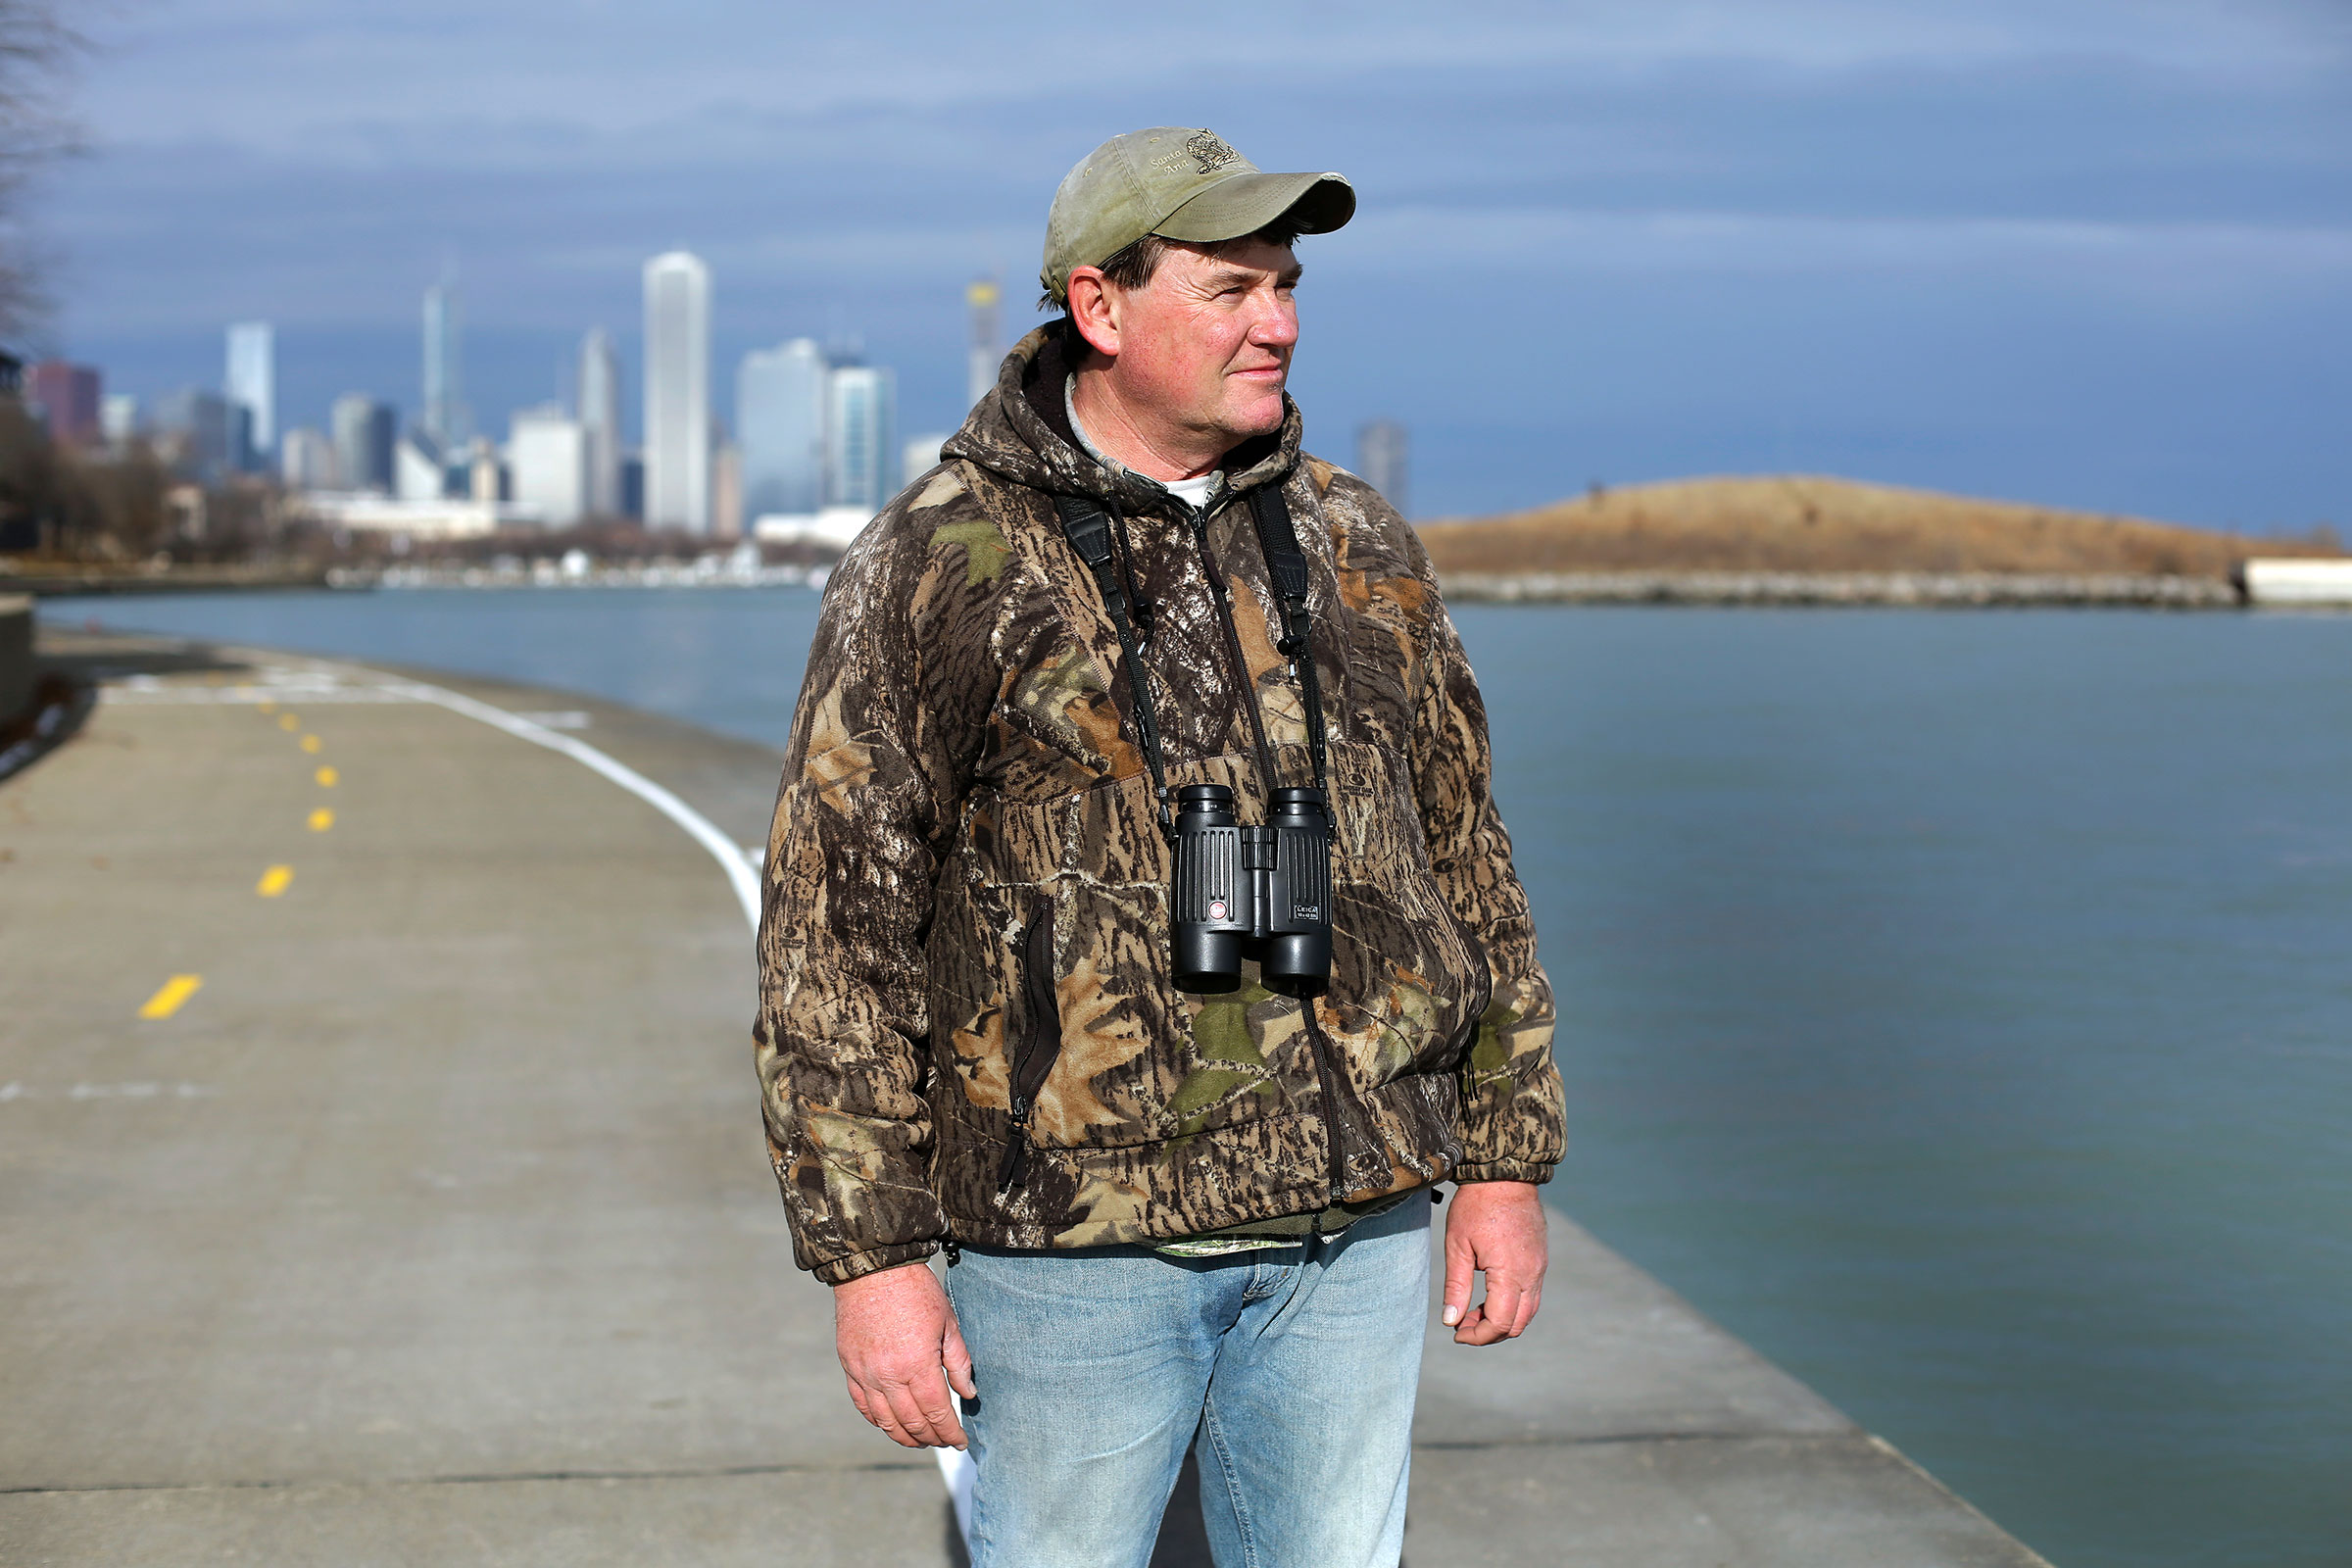 The Chicago count was just one of many this year for wildlife biologist Kelly McKay, who hopes to one day take over the record for participating in the most CBCs. Joshua Lott